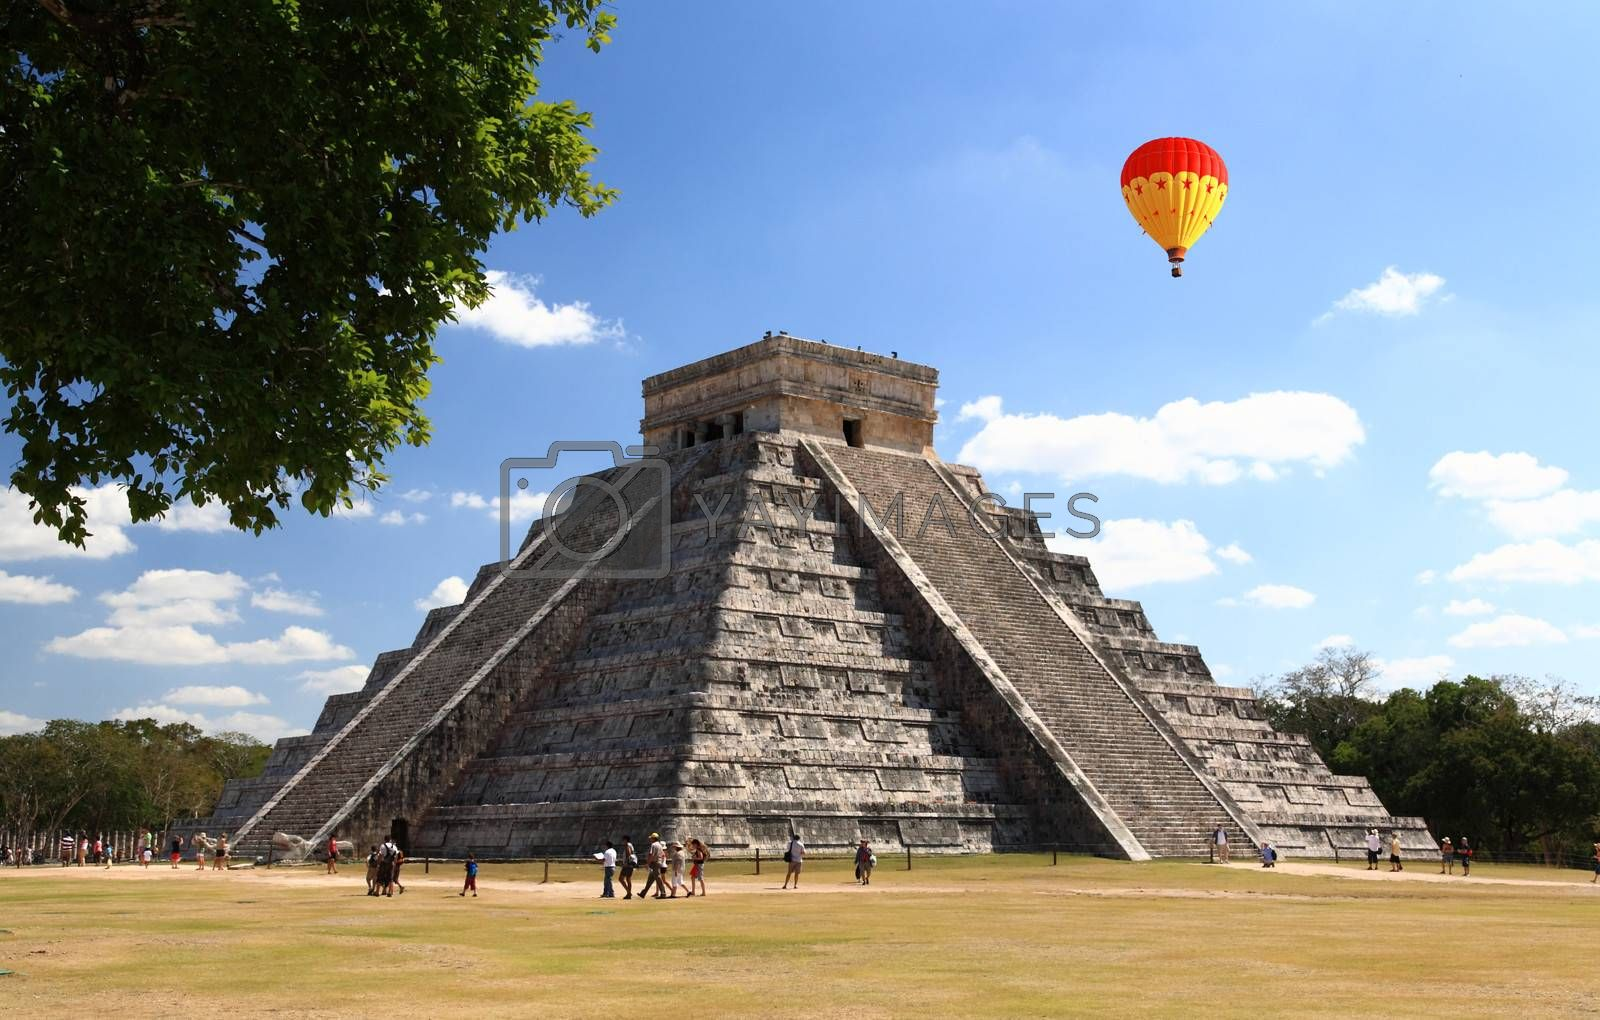 Royalty free image of The temples of chichen itza temple in Mexico by gary718